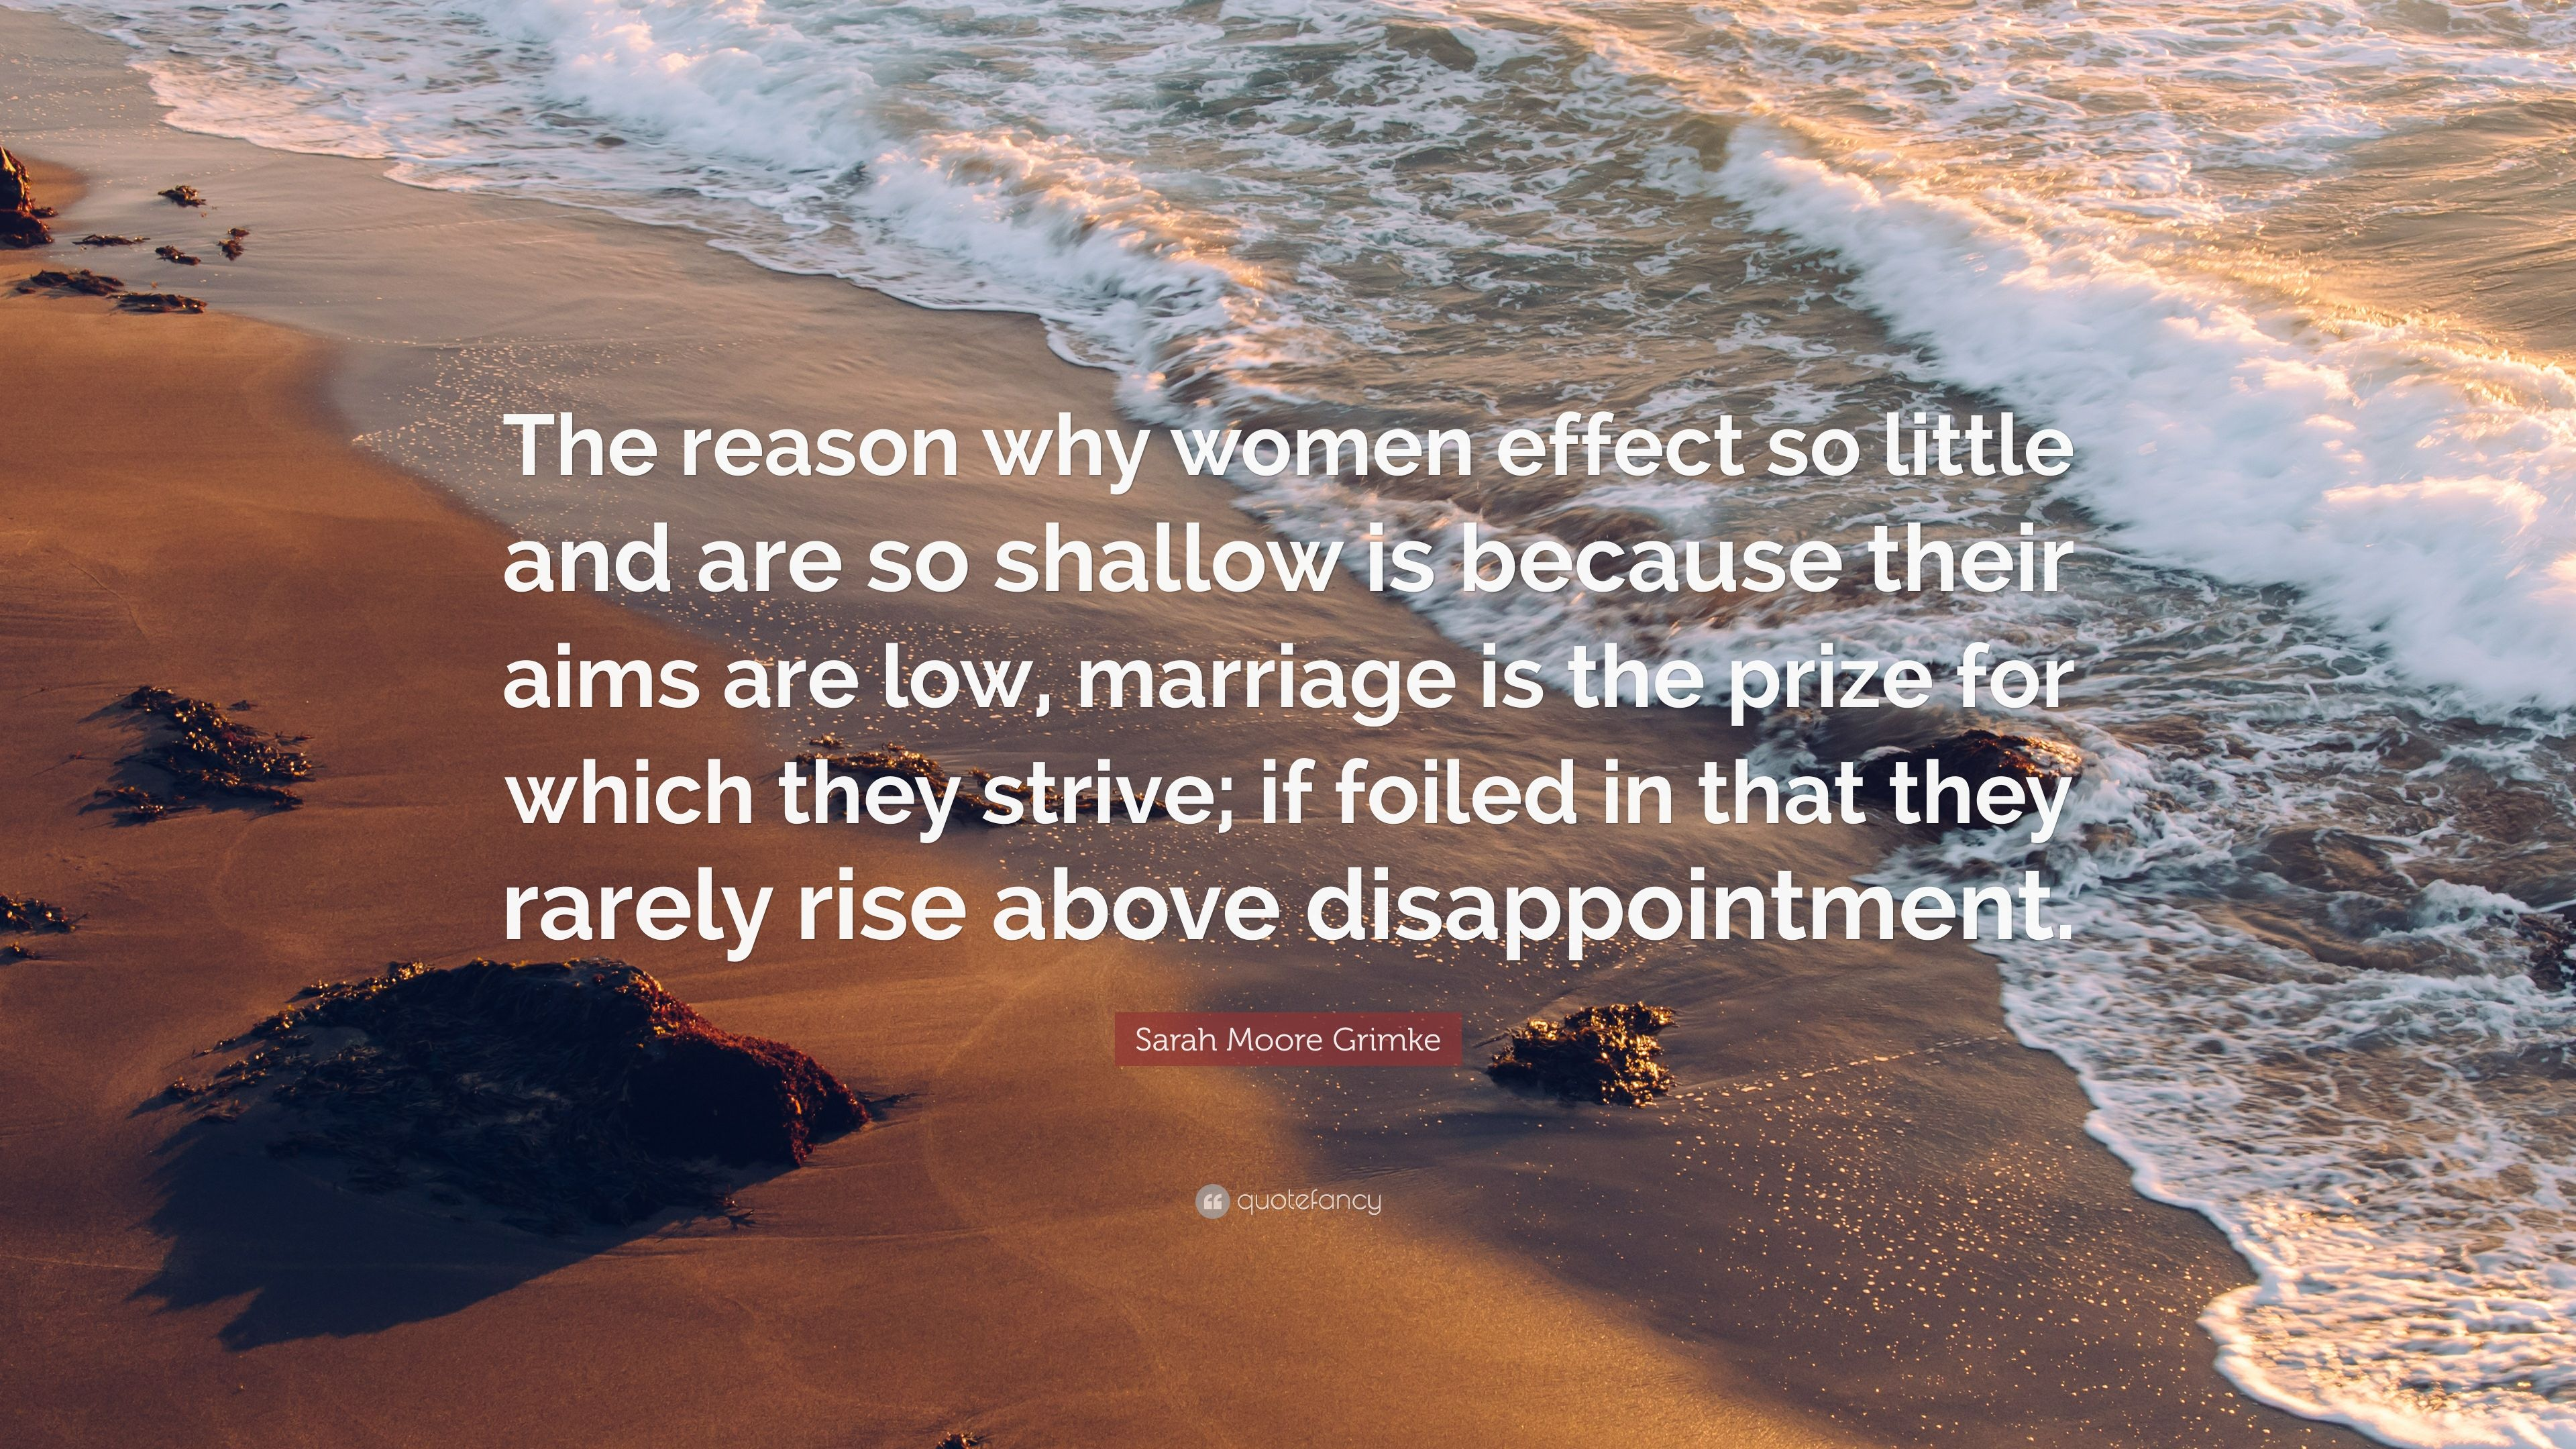 Sarah Moore Grimke Quote: The reason why women effect so